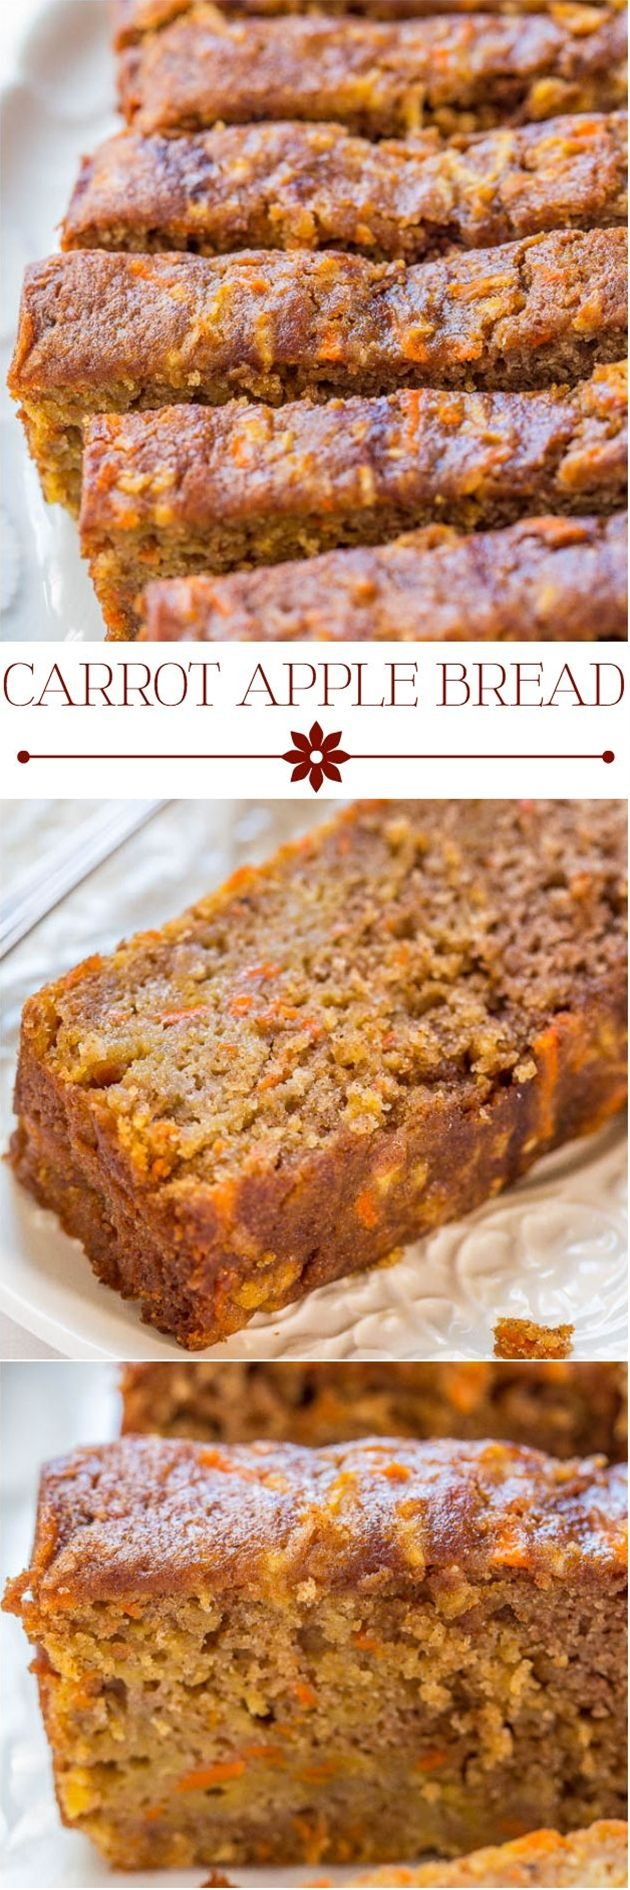 Carrot+Apple+Bread+-+Carrot+cake+with+apples+added+and+baked+as+a+bread+so+its+healthier!+Super+moist,+packed+with+flavor,+fast+and+easy!!